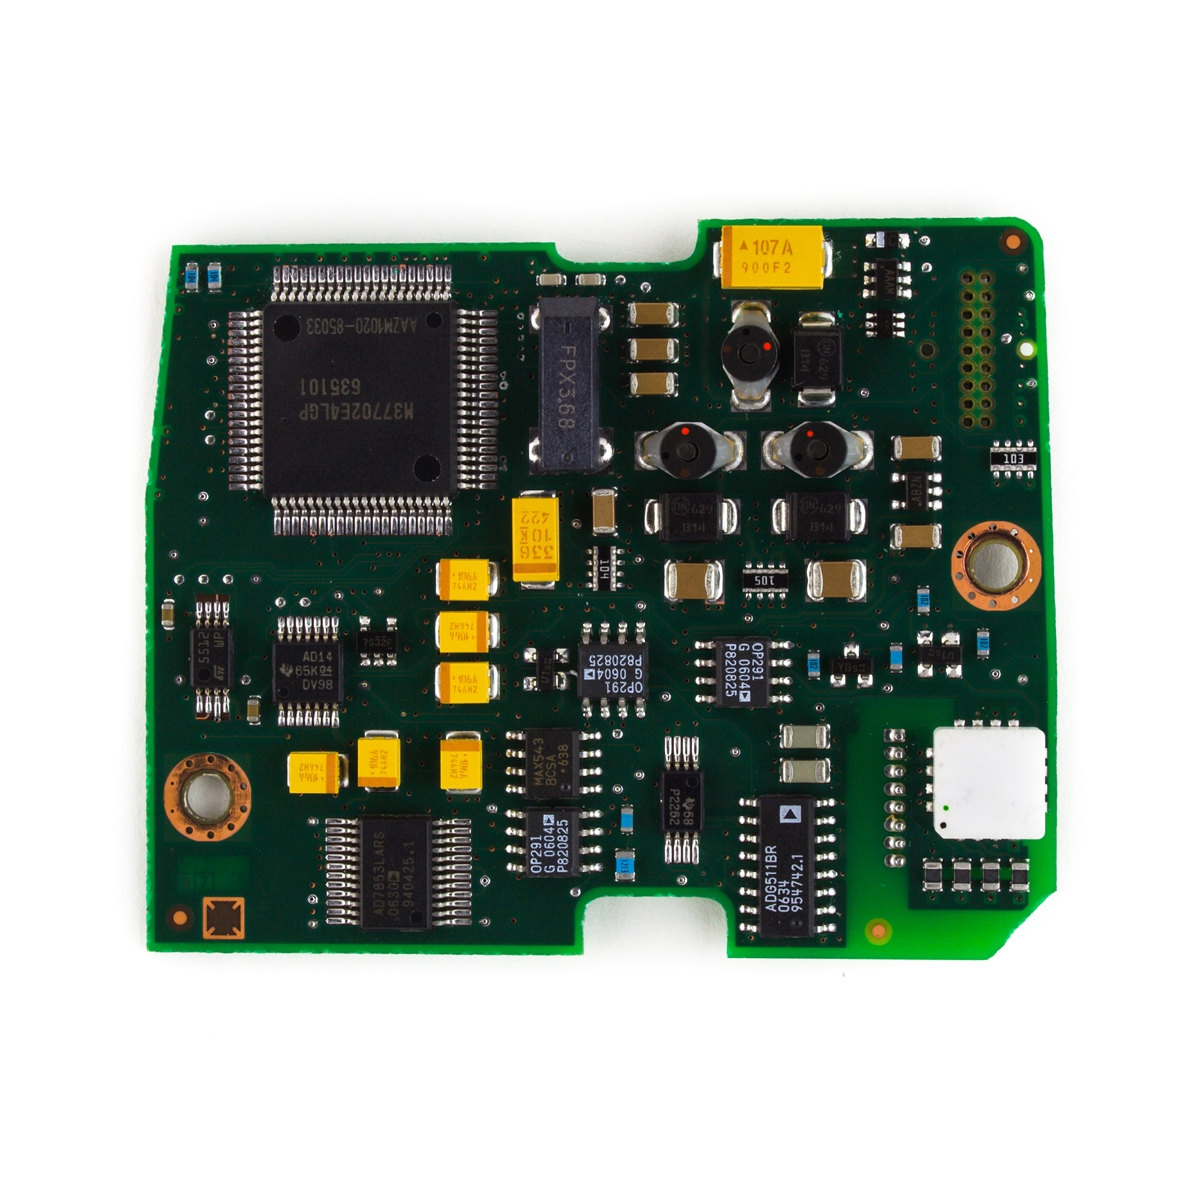 Philips IntelliVue M4841A TRx+ Telemetry Transmitter S03 SpO2 Circuit Board PC Assembly